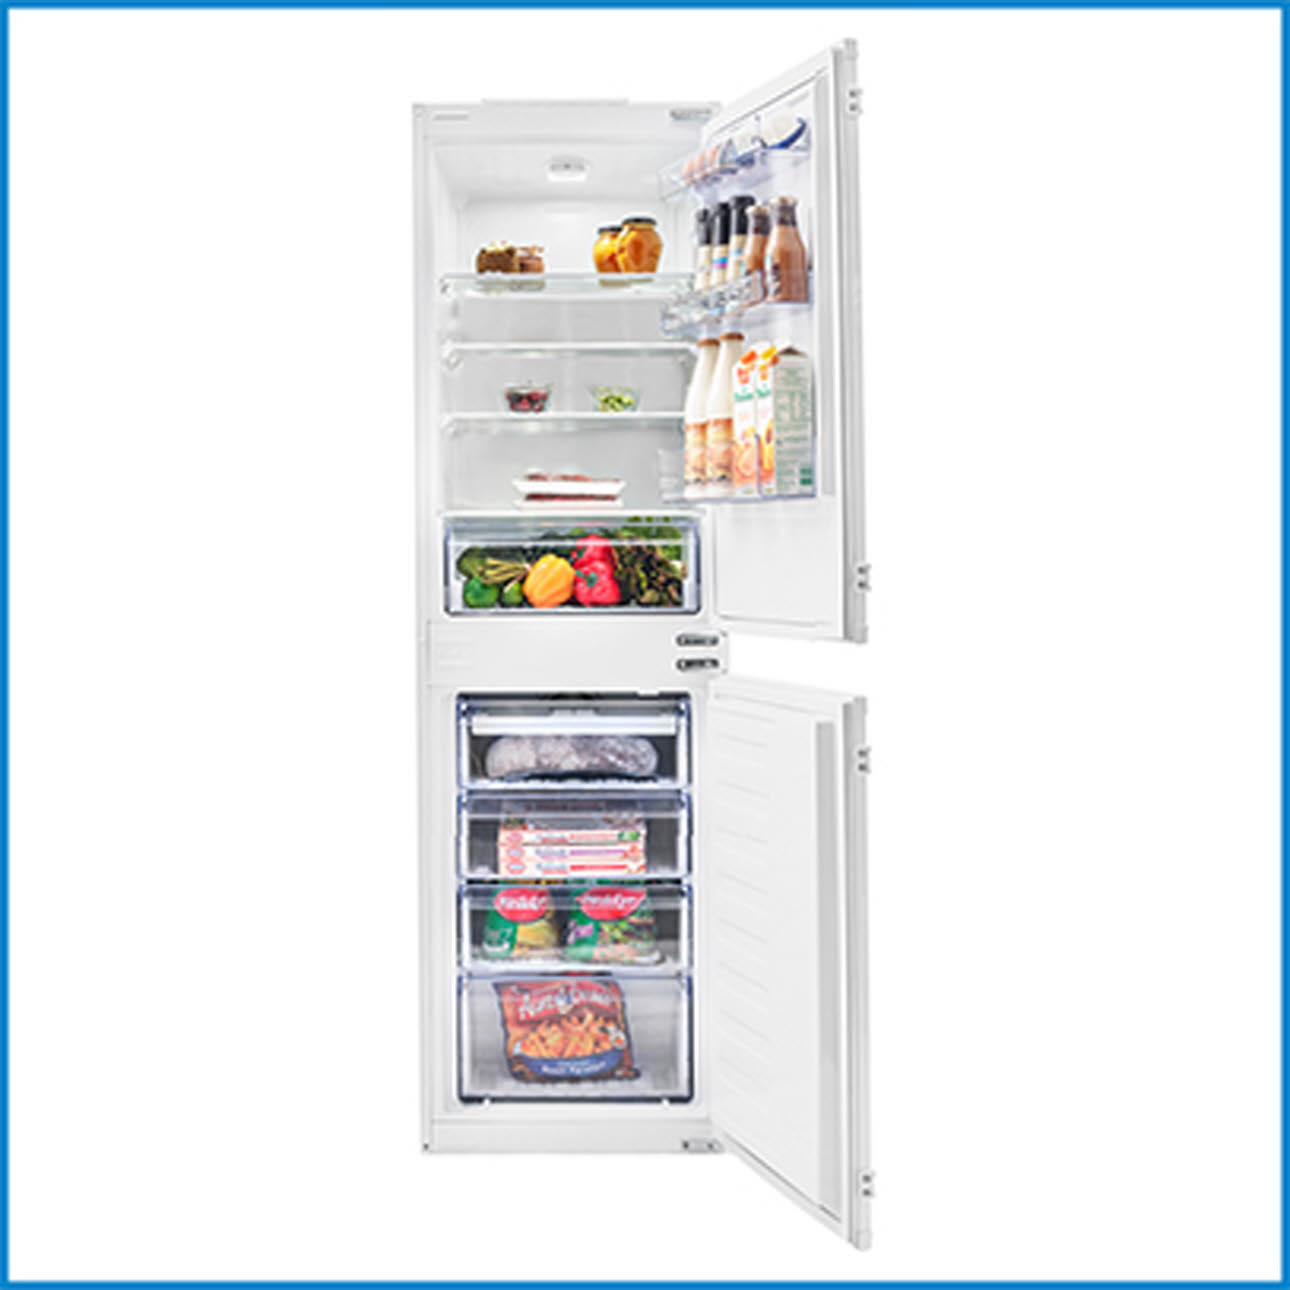 Beko Fridge freezer, door open